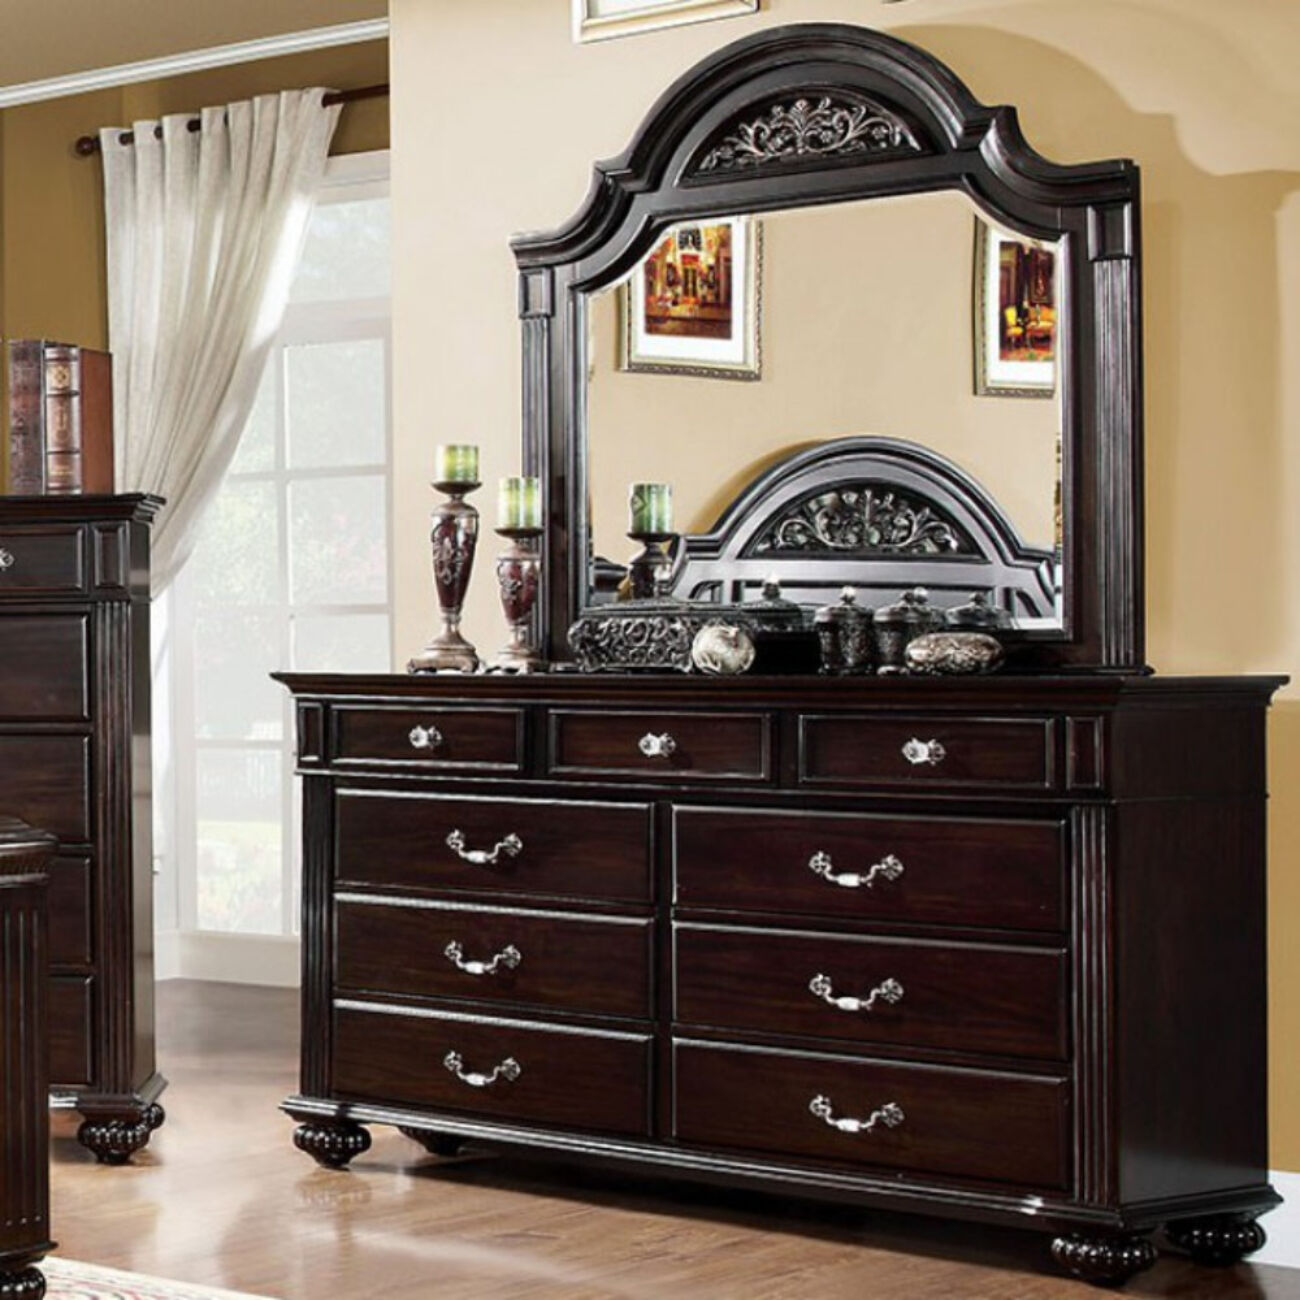 Ravishing Wooden Transitional Style Dresser, Dark Walnut Brown